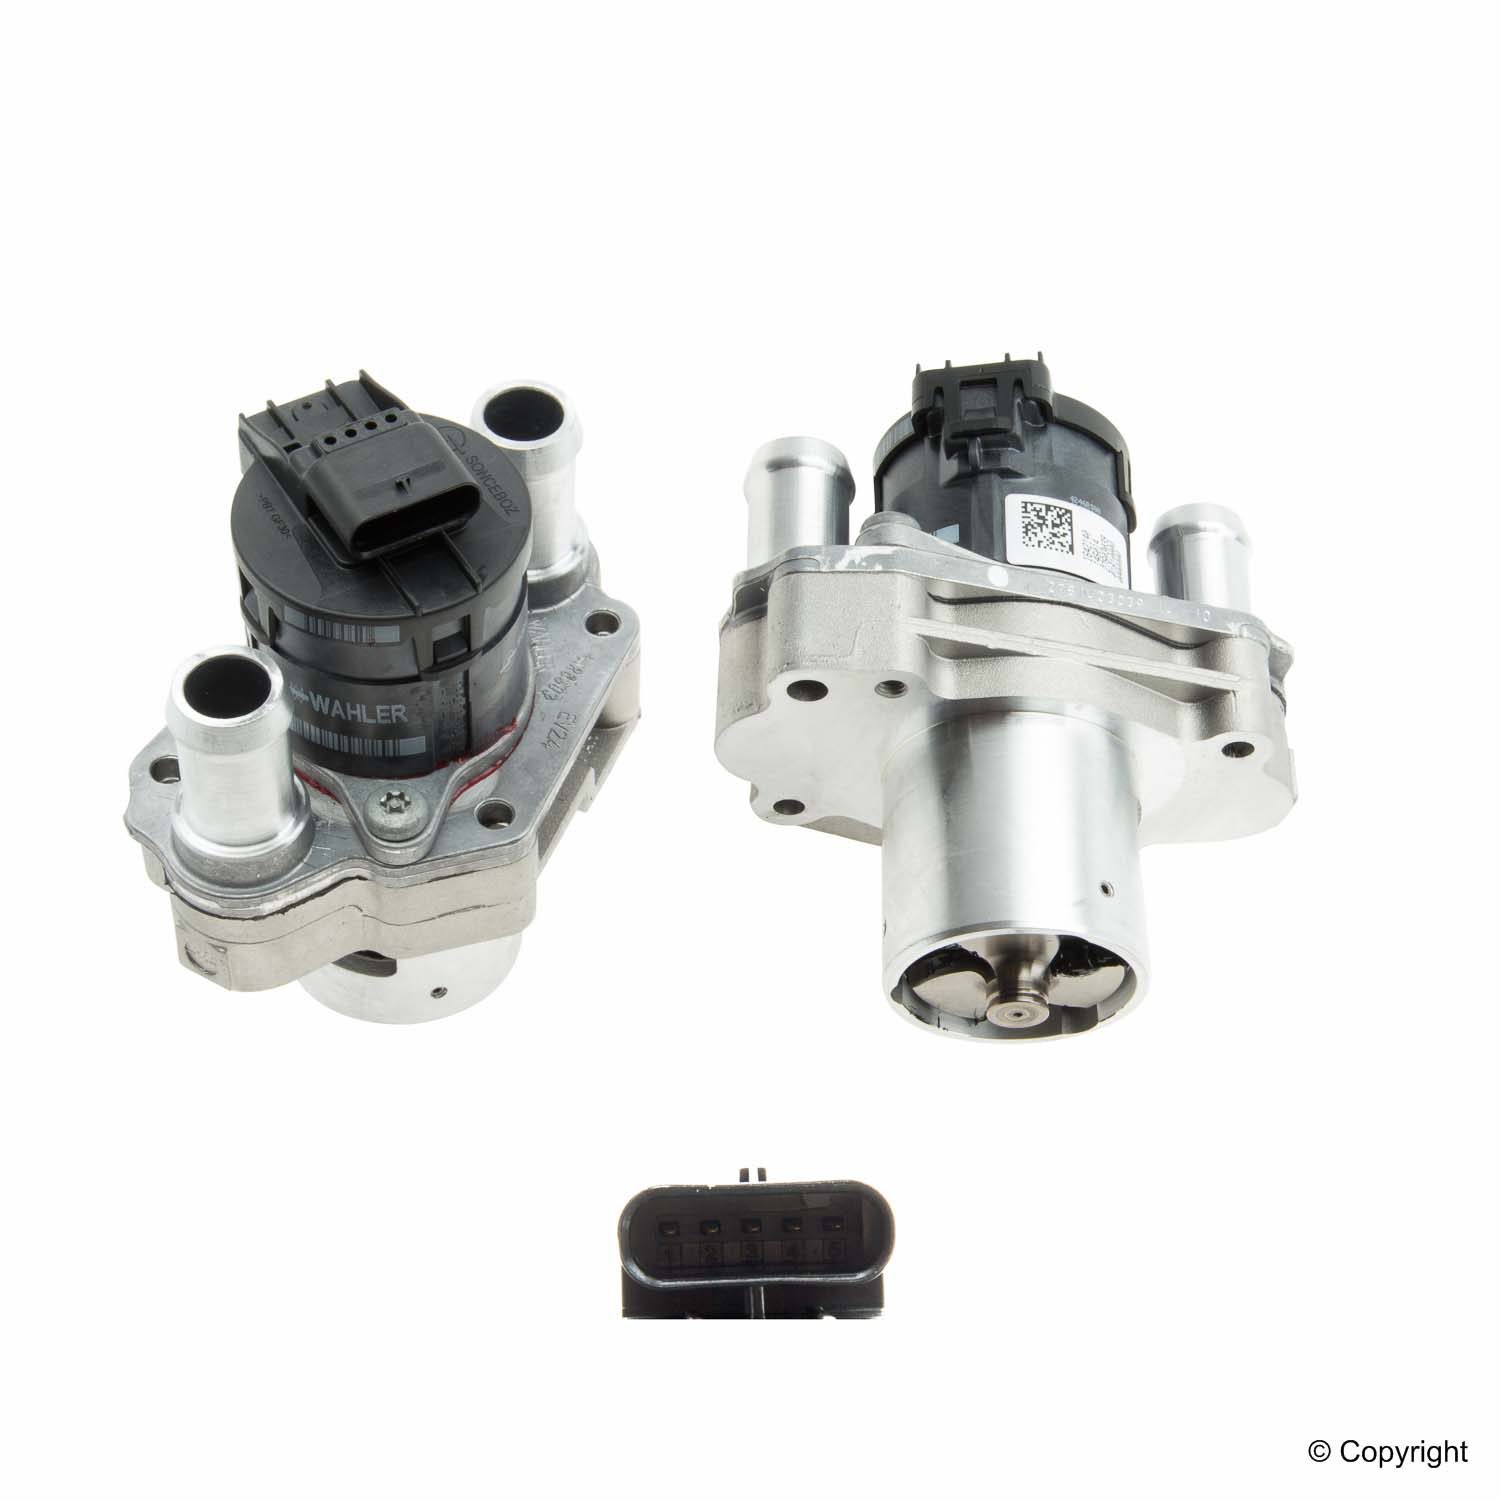 Egr valve for mb freightliner sprinter 2010 2013 oem for Mercedes benz egr valve replacement